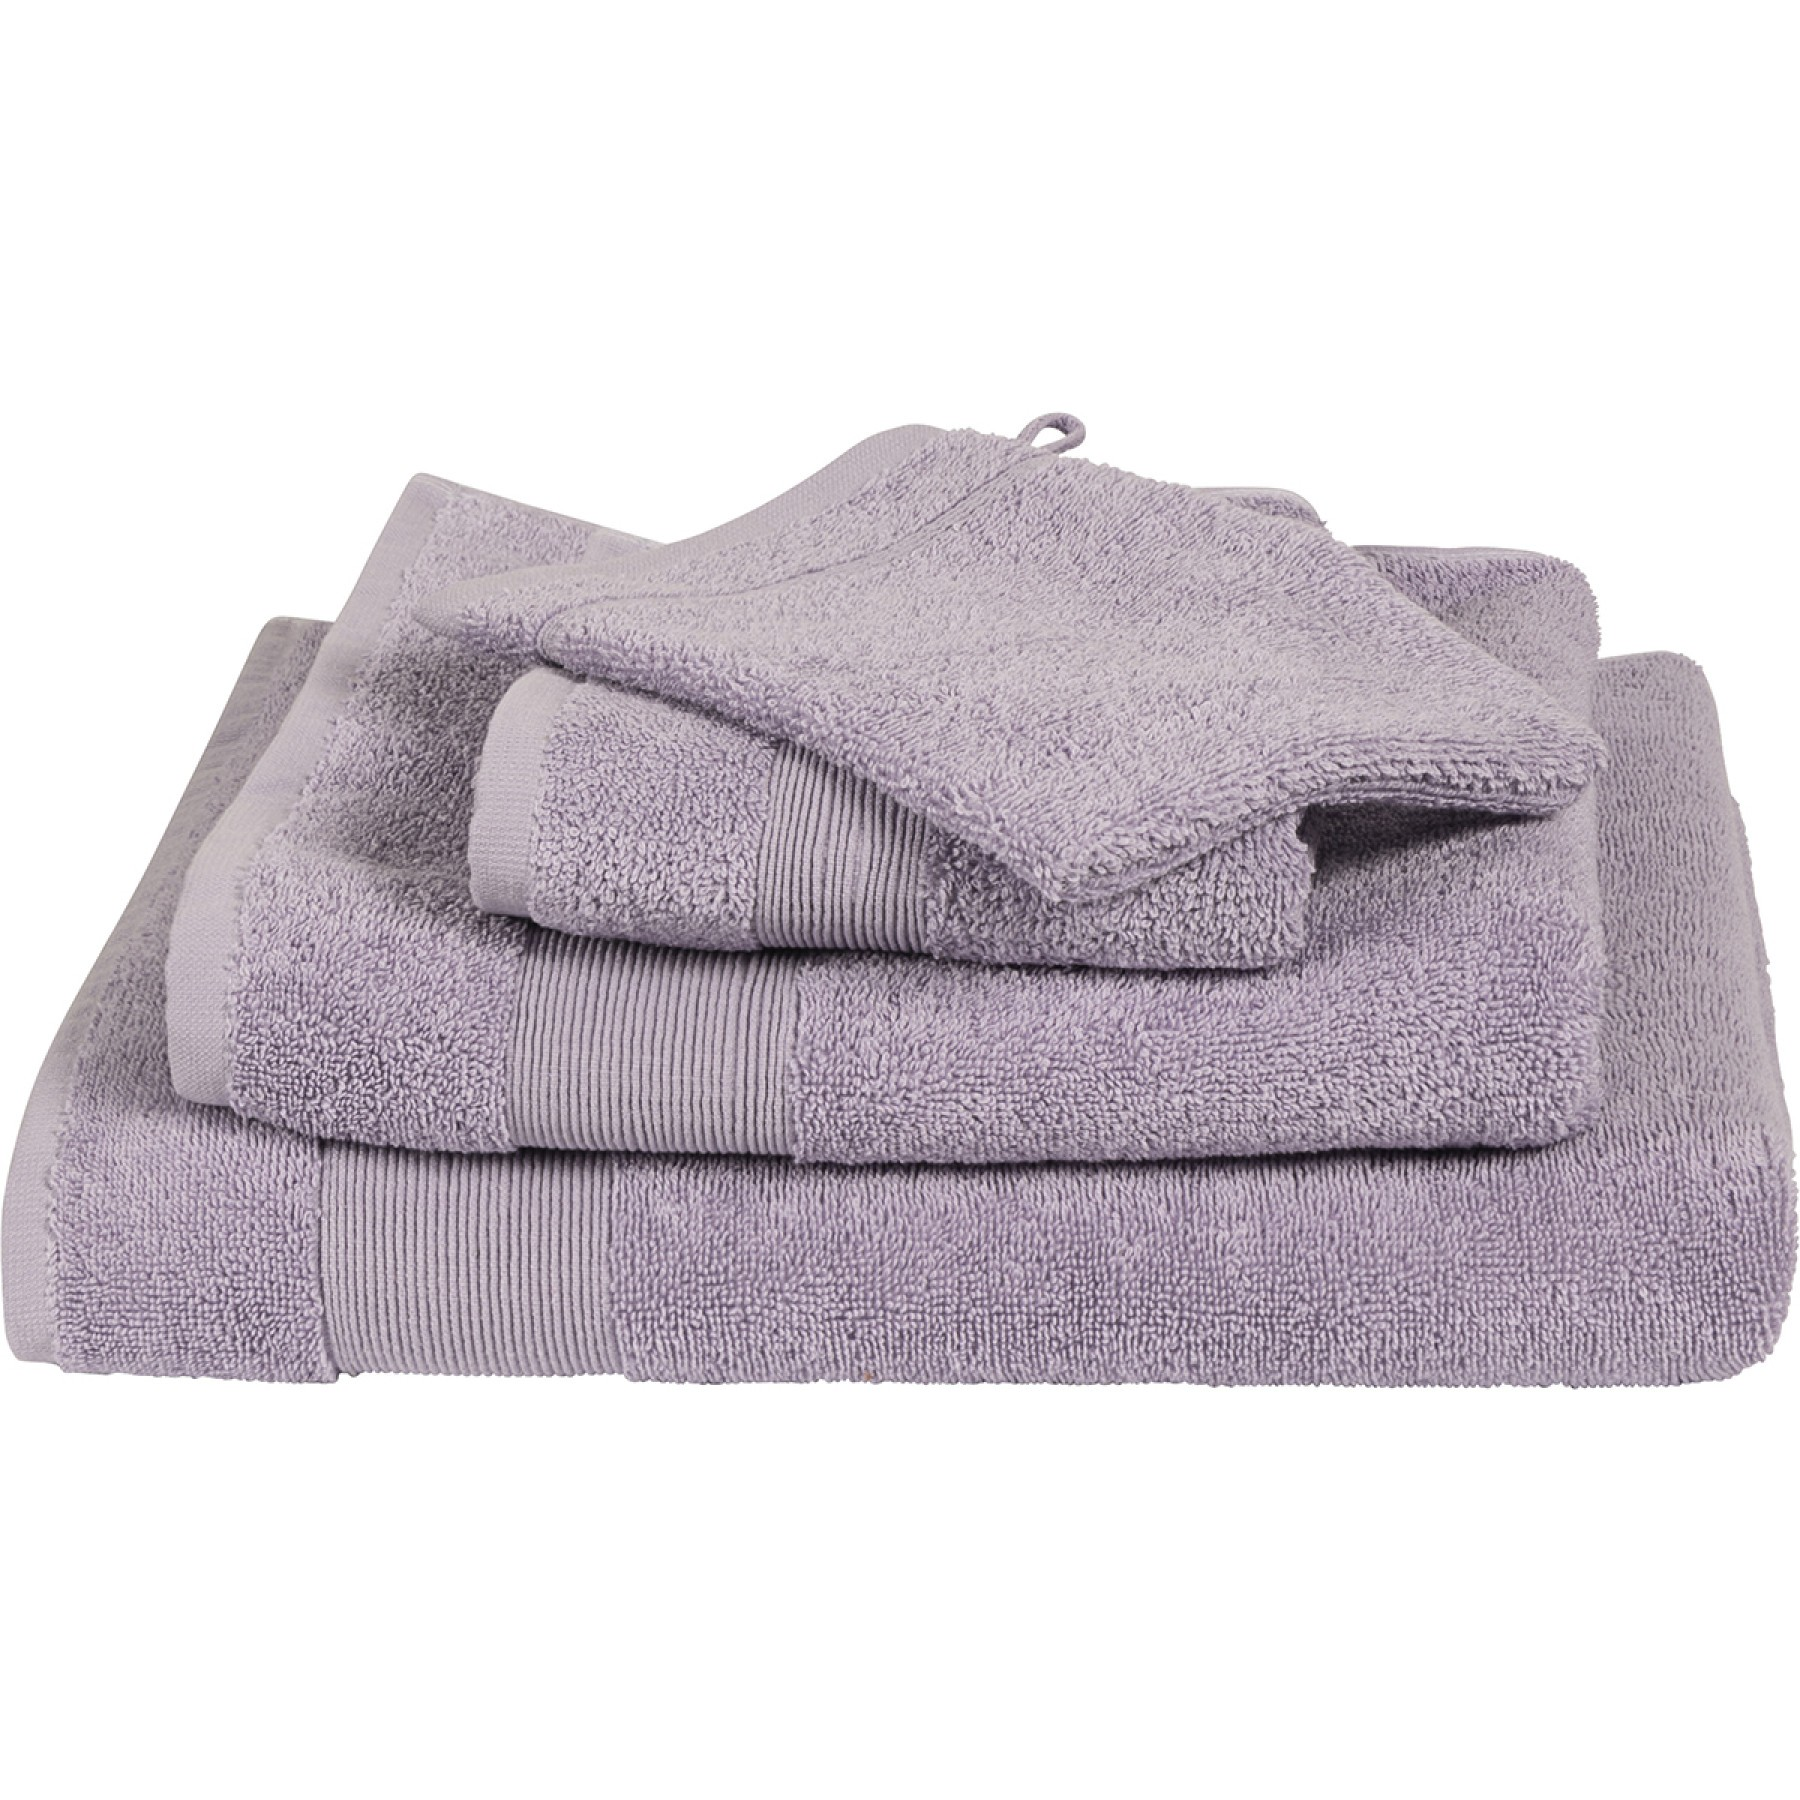 Livello Washand Home Collection Lilac